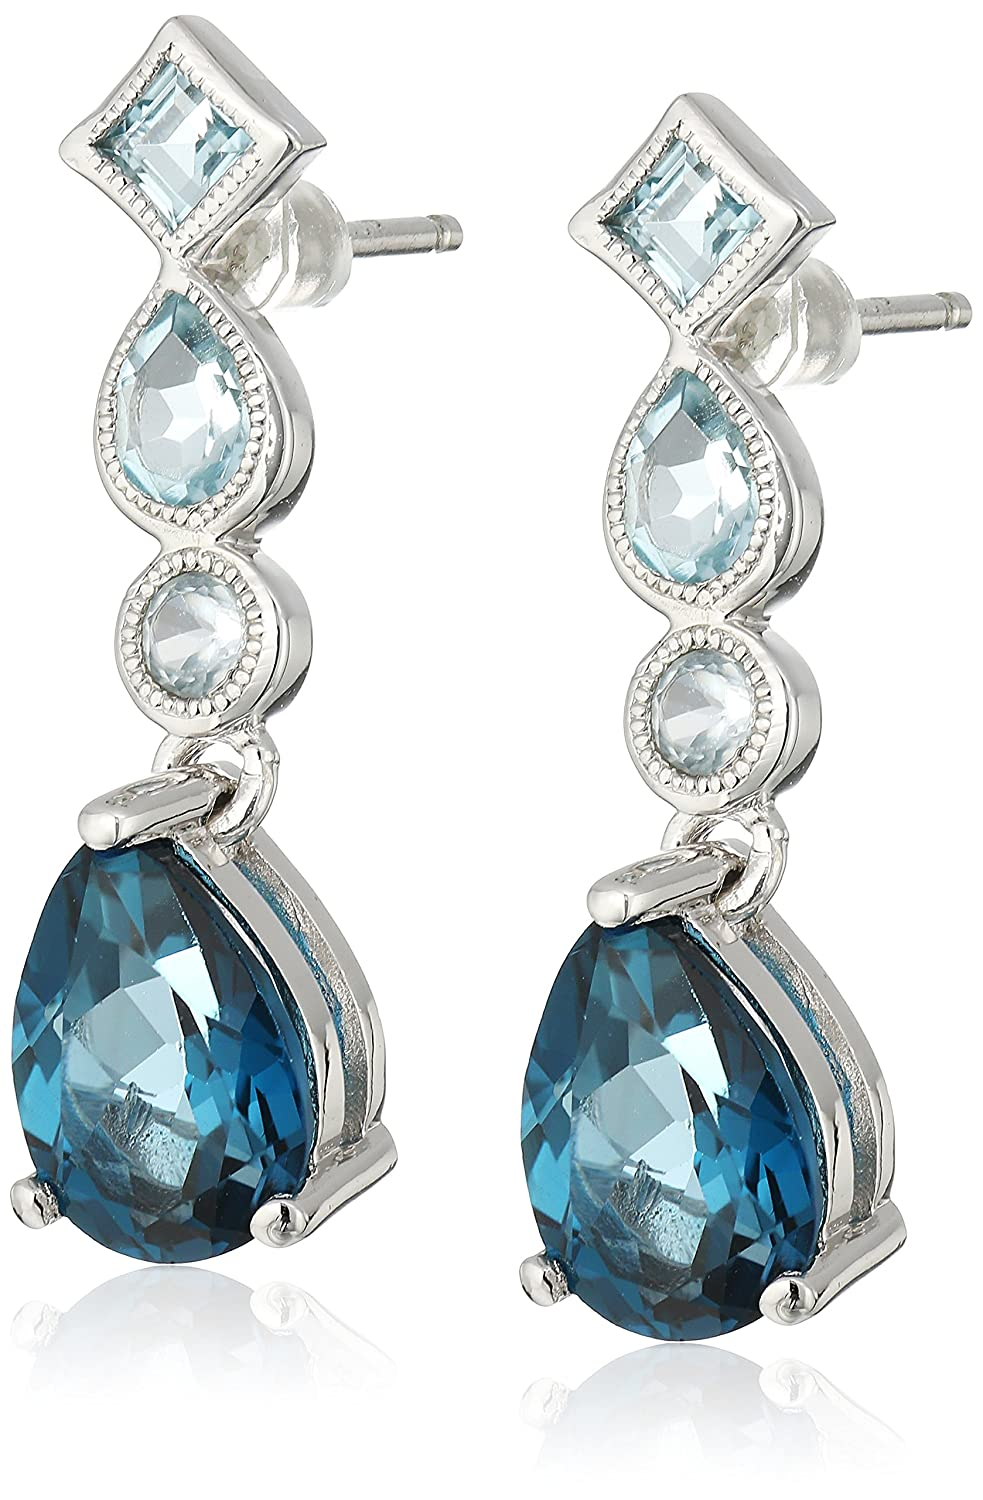 jewelry pineapple designer earrings blue italian topaz jewellery exeter cut designed product jewelers